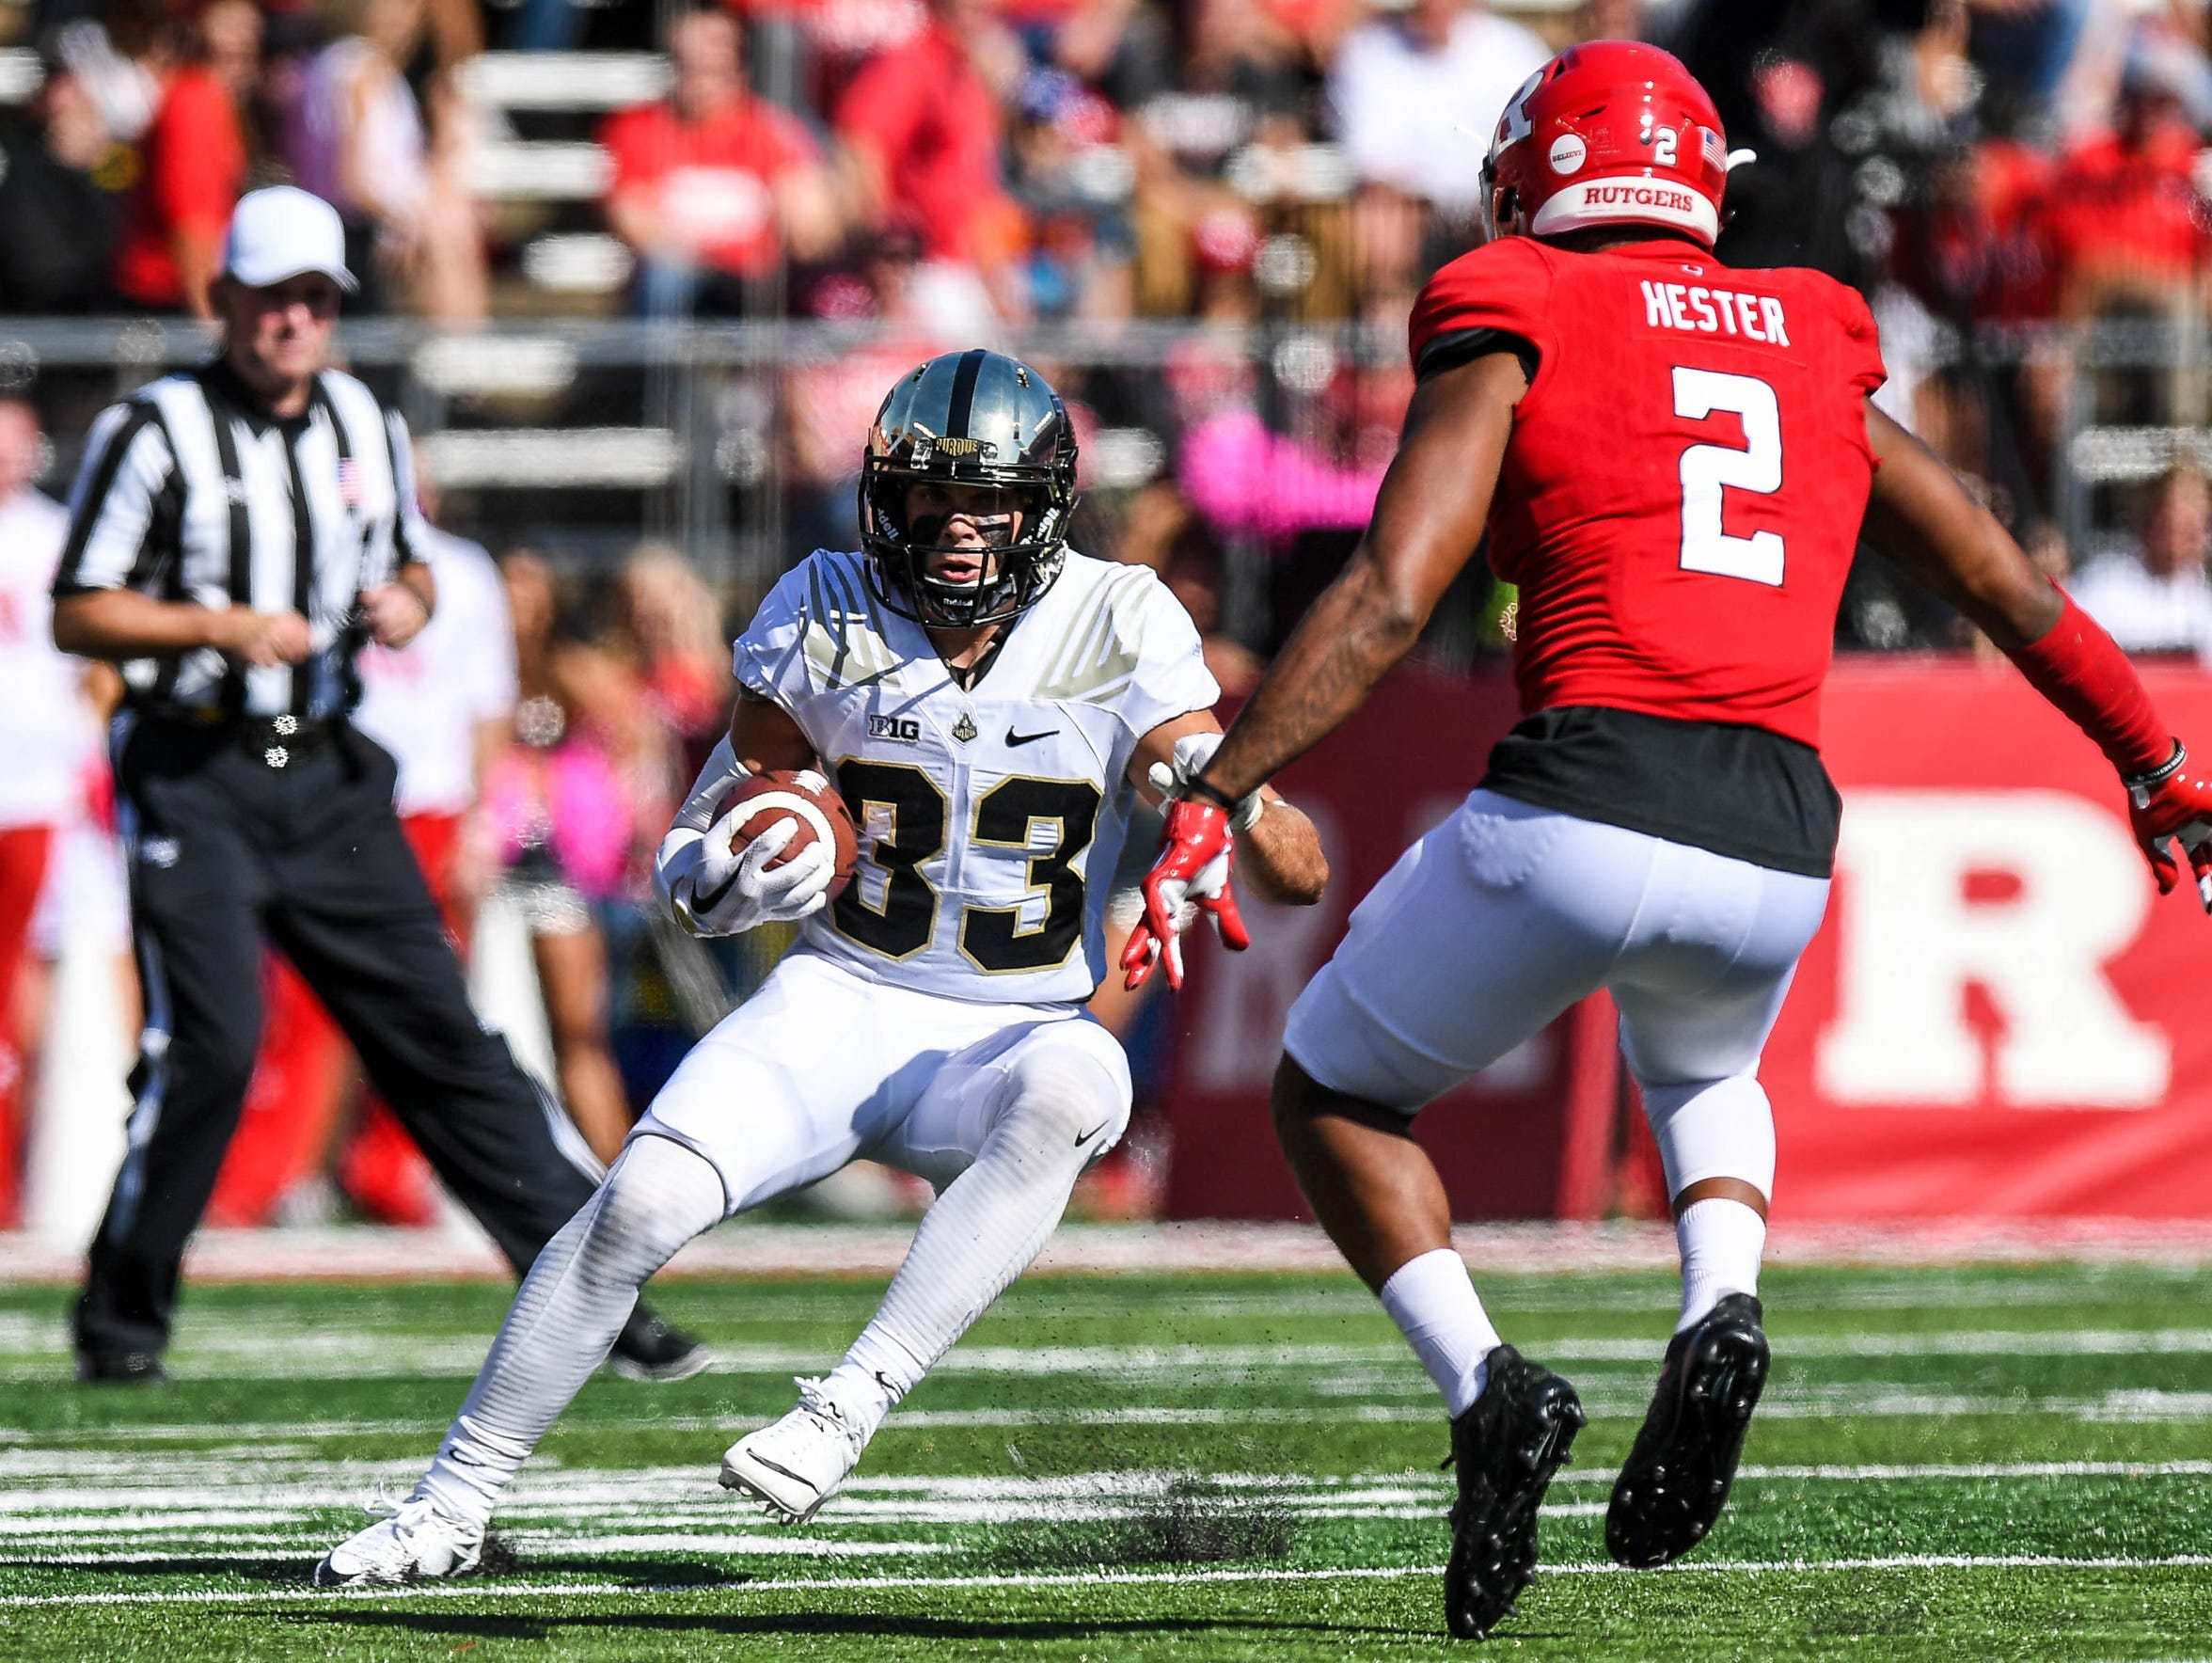 Purdue wide receiver Jackson Anthrop (33) runs after a reception against the Rutgers Scarlet Knights during the second quarter.